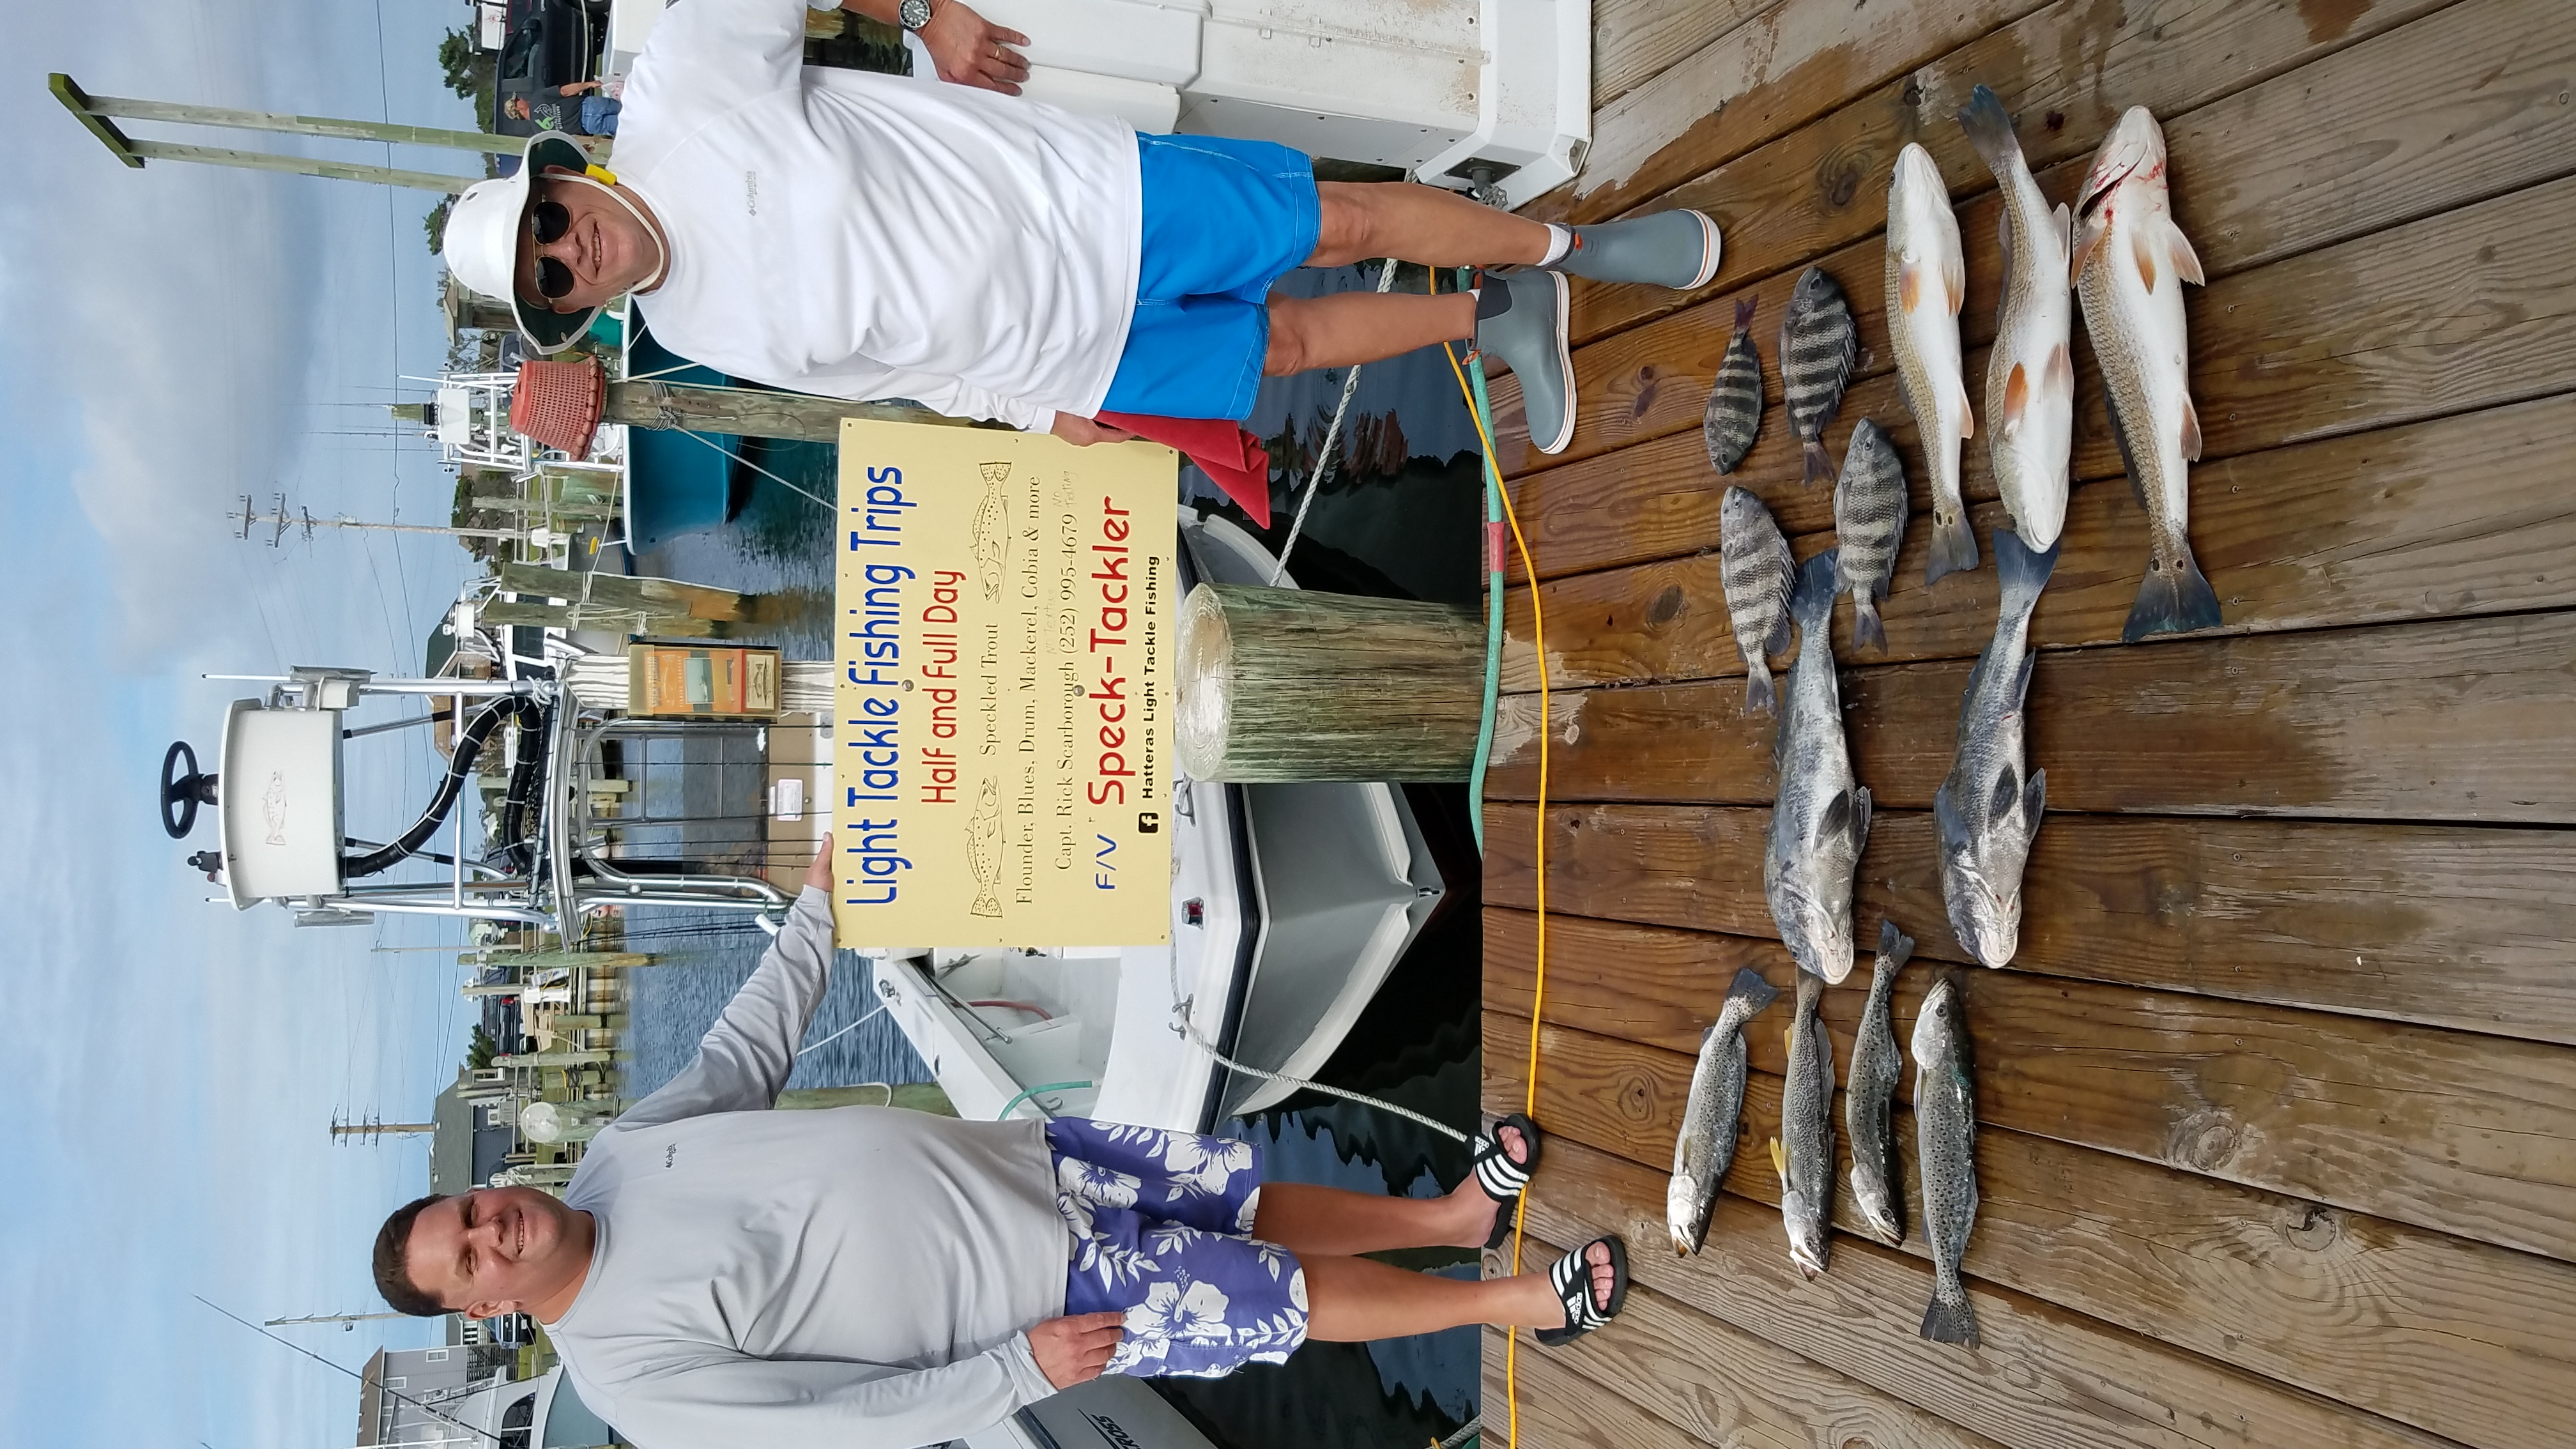 Speck-Tackler Inshore Fishing Charters Hatteras Teach's Lair